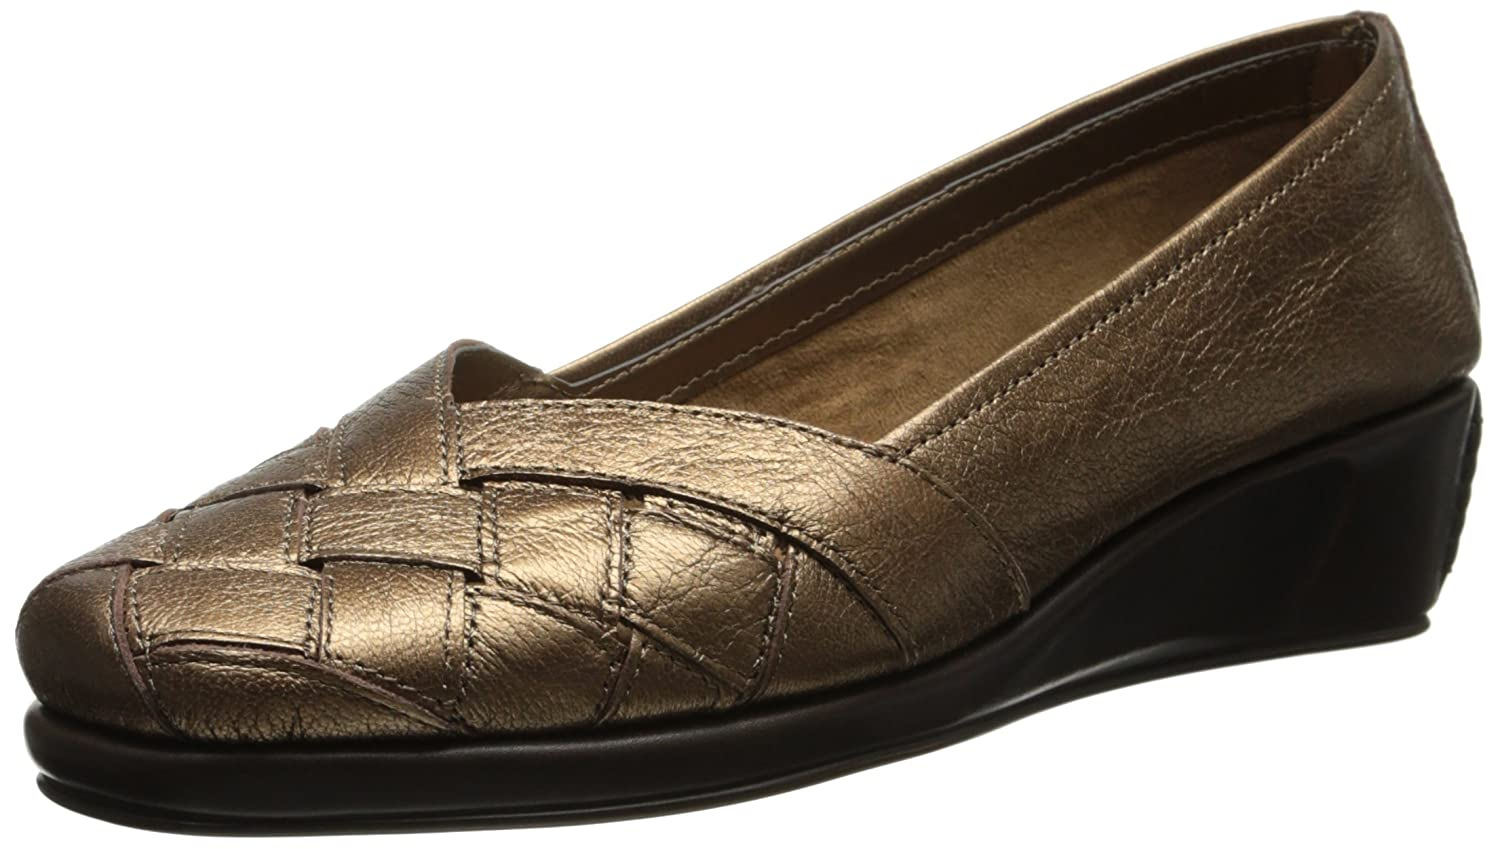 Aerosoles Women's Stunning Slip-On Loafer